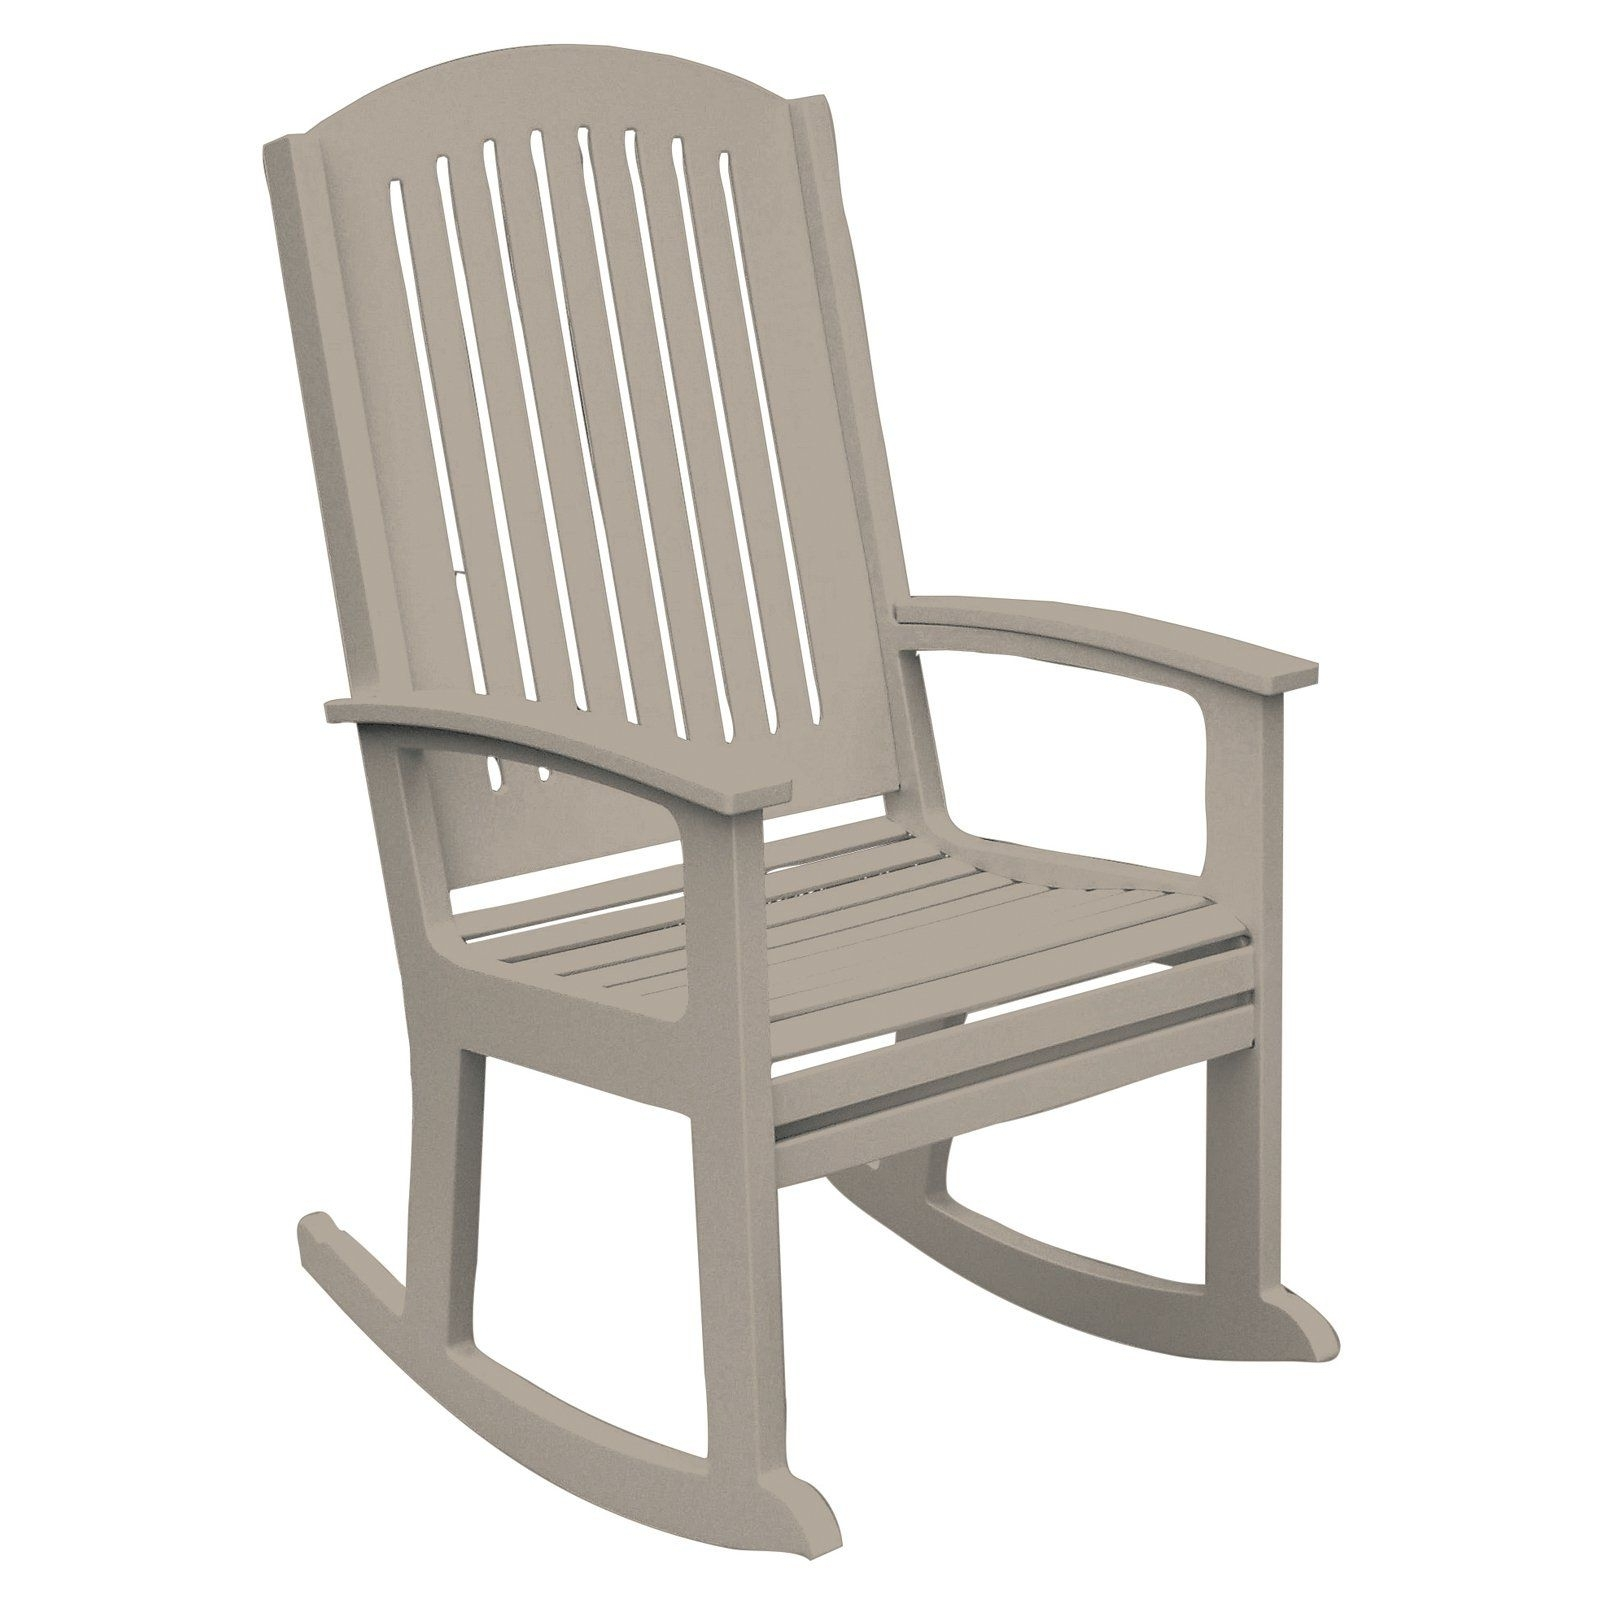 High Back Rocking Chairs Pertaining To Trendy Poly Concepts Outdoor Andureflex High Back Rocker (View 14 of 15)